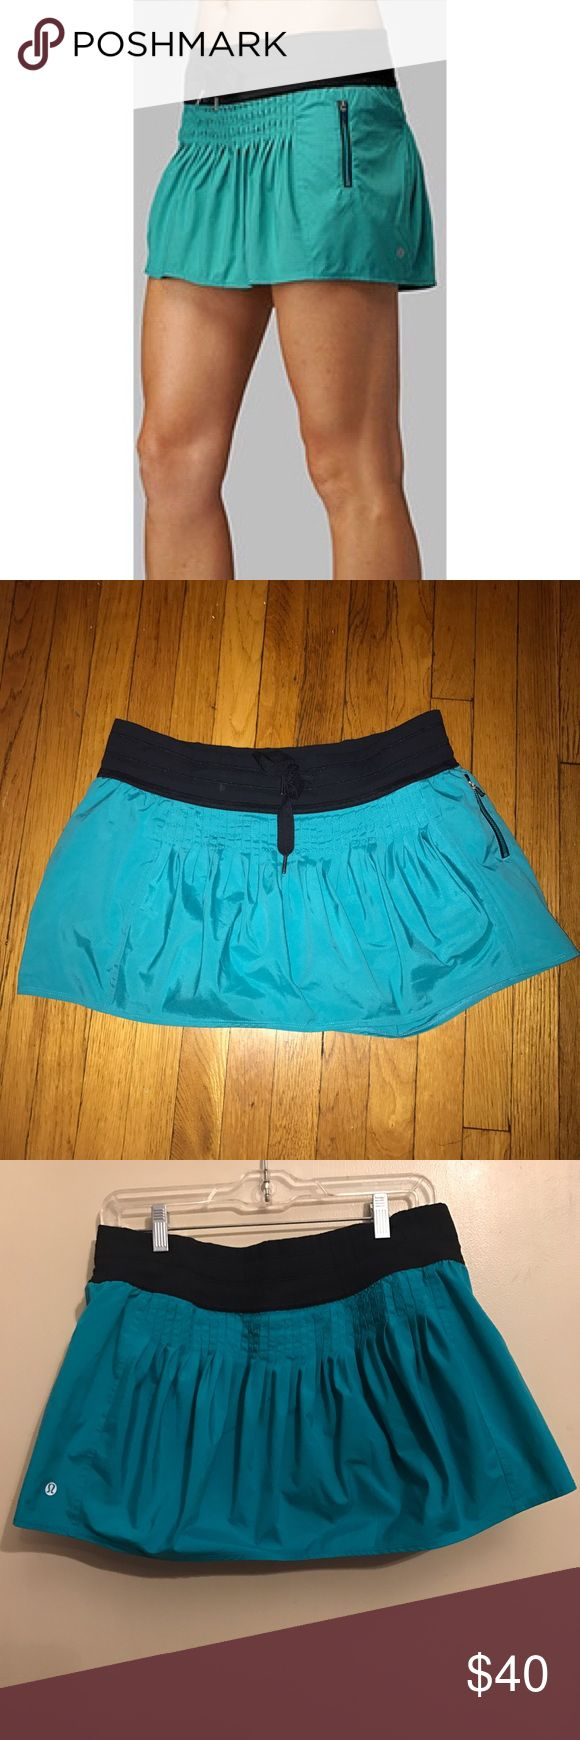 Rare Lululemon Teal Revitalize Skirt Size 10 Hard to find Revitalize skirt from Lululemon. Beautiful teal color is true to the Lululemon stock cover photo. Black shorts with glitter gel grips under the adorable pleated skirt. Black drawstring waist band and zipper pocket detail. Skirt has a lot small brown mark as shown in the photo that is not very noticeable. Otherwise it's in great condition. Size 10. Comes from a smoke and pet free home. lululemon athletica Skirts Mini